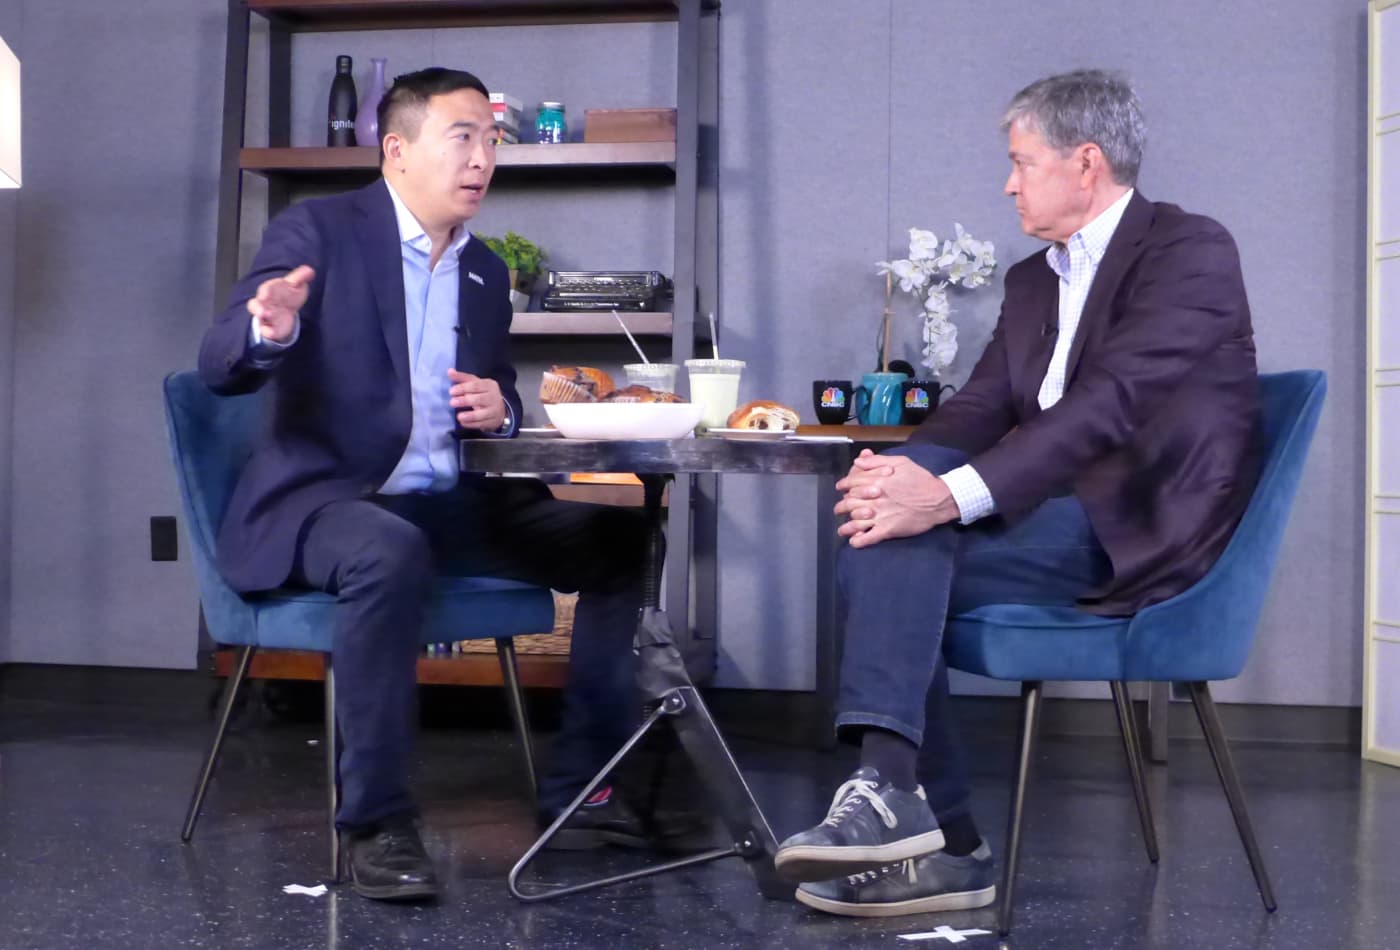 2020 candidate Andrew Yang: 'The fundamentals that we assume to be true about capitalism are now breaking down'